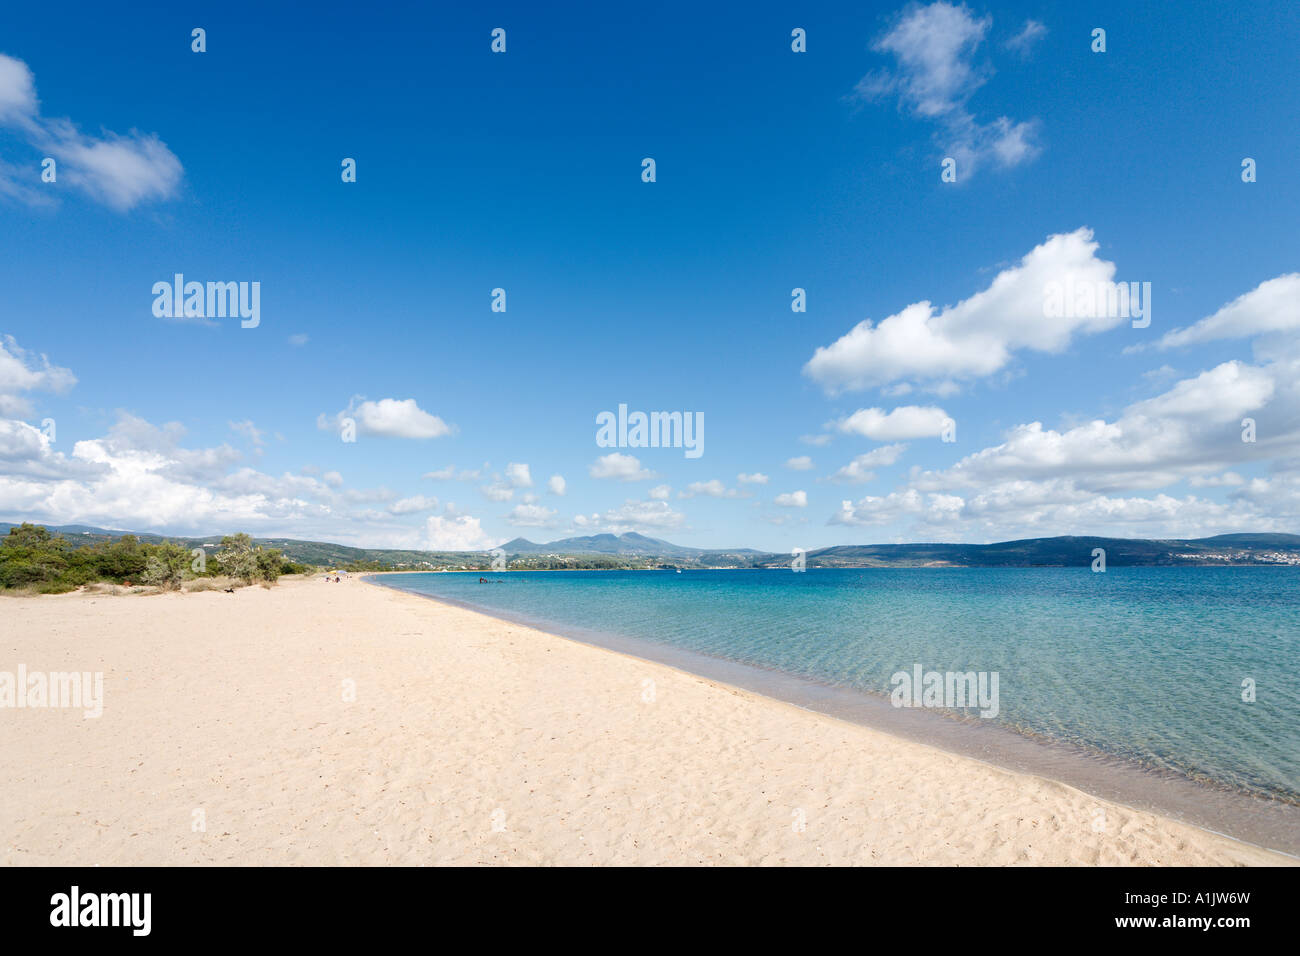 Golden Beach, Yialova, Messinia, Peloponnese, Greece - Stock Image